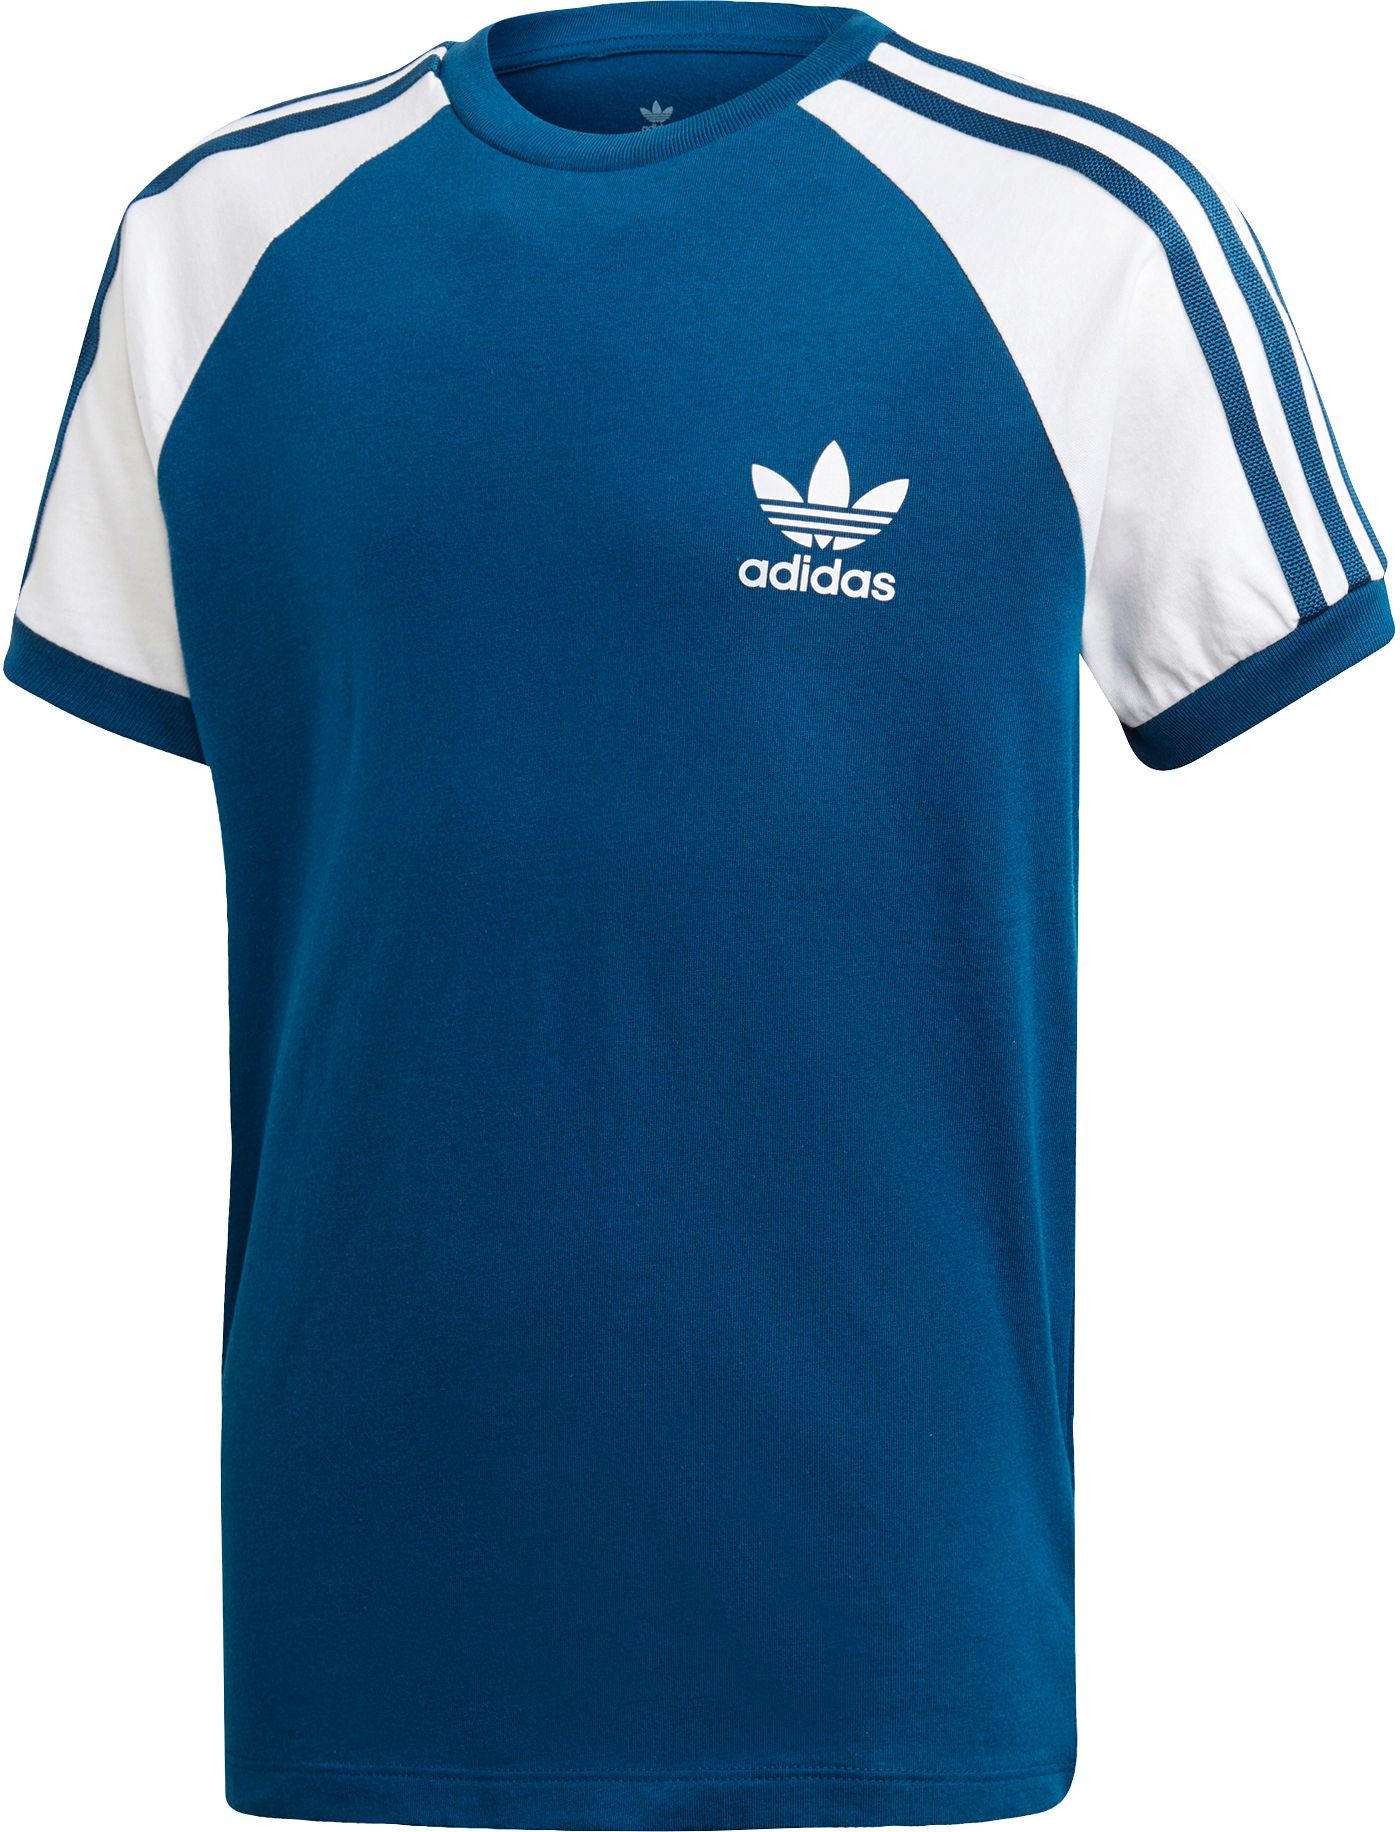 adidas Originals Boys' 3-Stripes T-Shirt